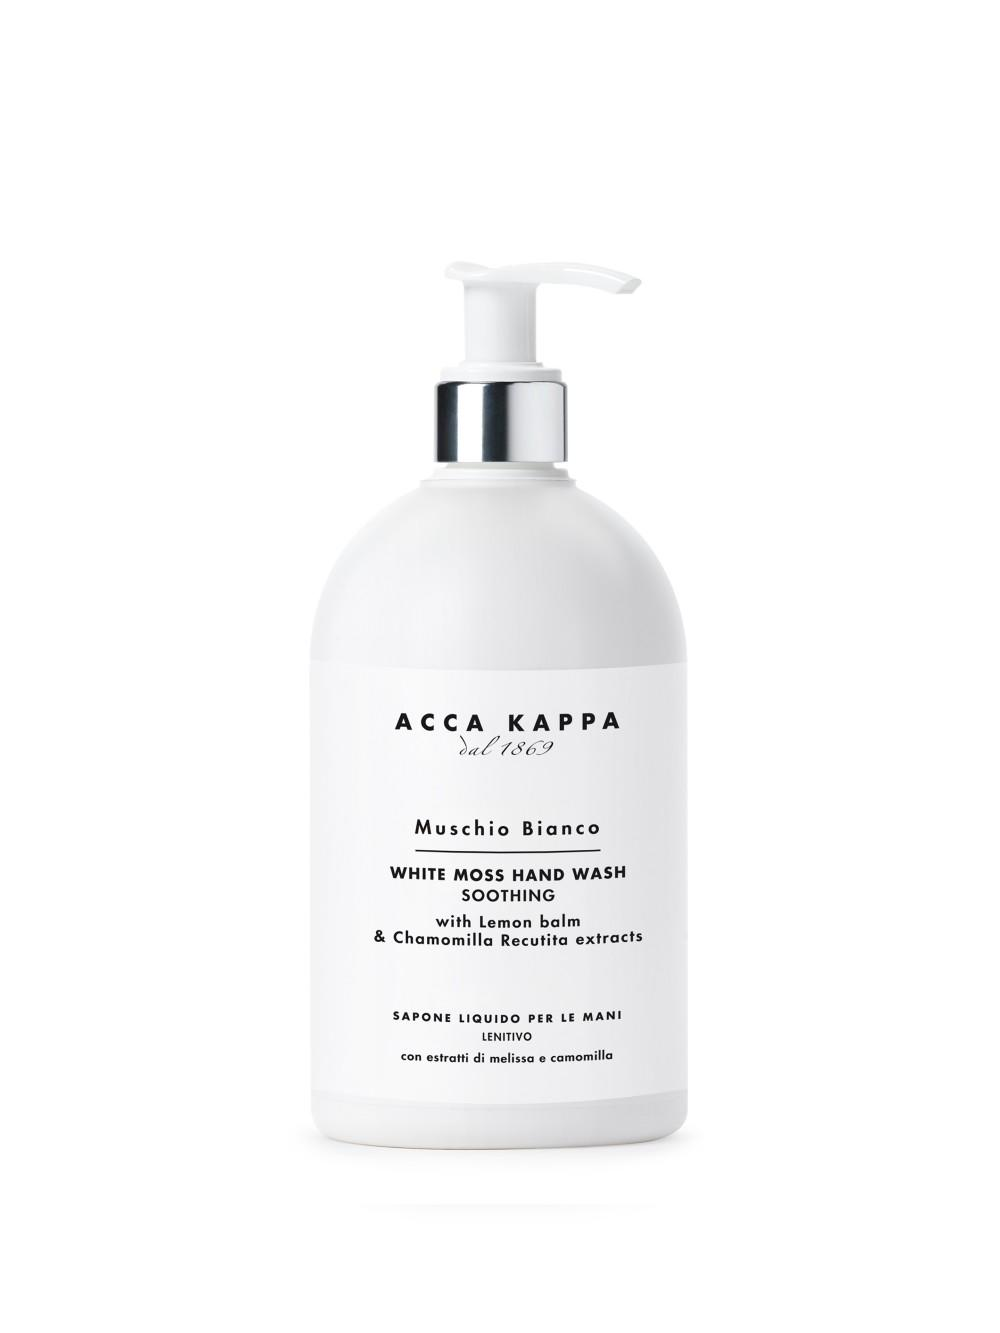 ACCA KAPPA White Moss Hand Wash 300ml